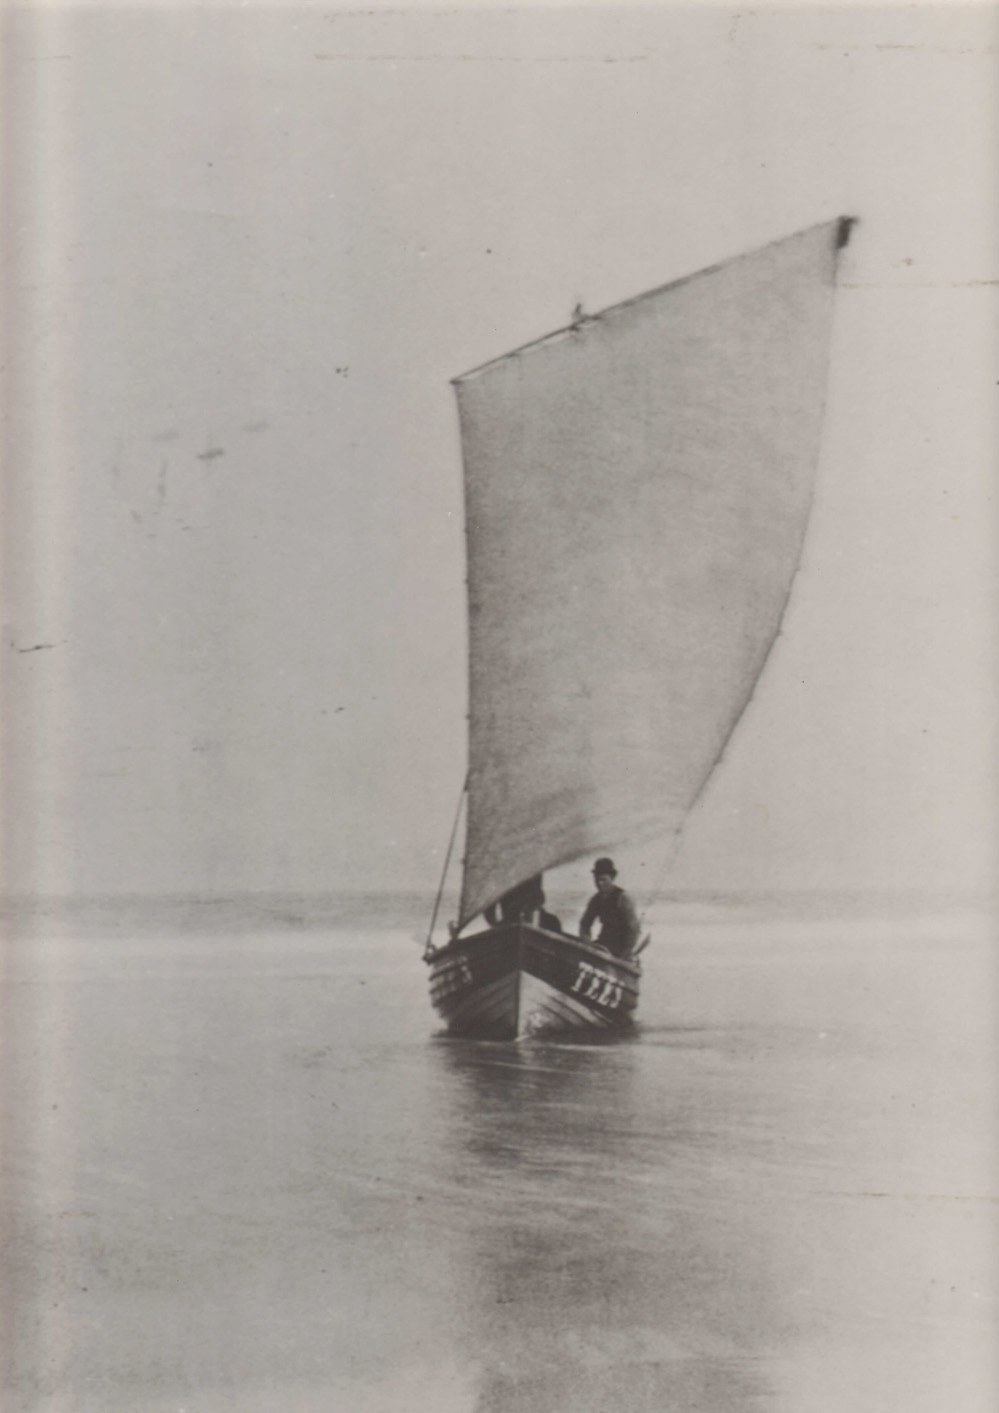 A Coble Under Sail, Courtesy of Museum of Hartlepool